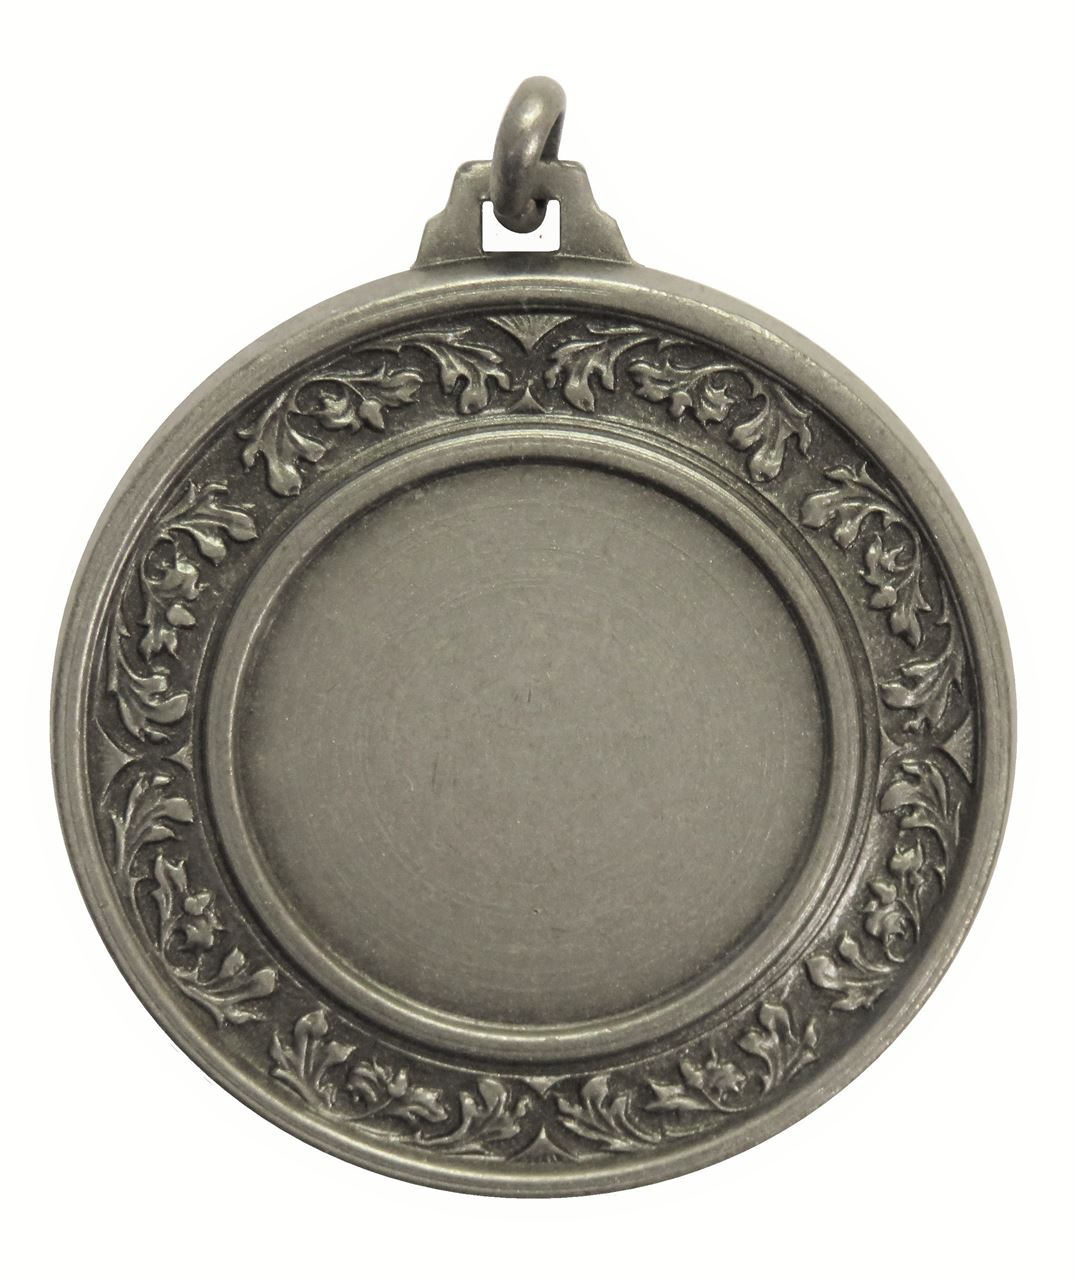 Silver Quality Vine Medal (size: 42mm) - 5550E